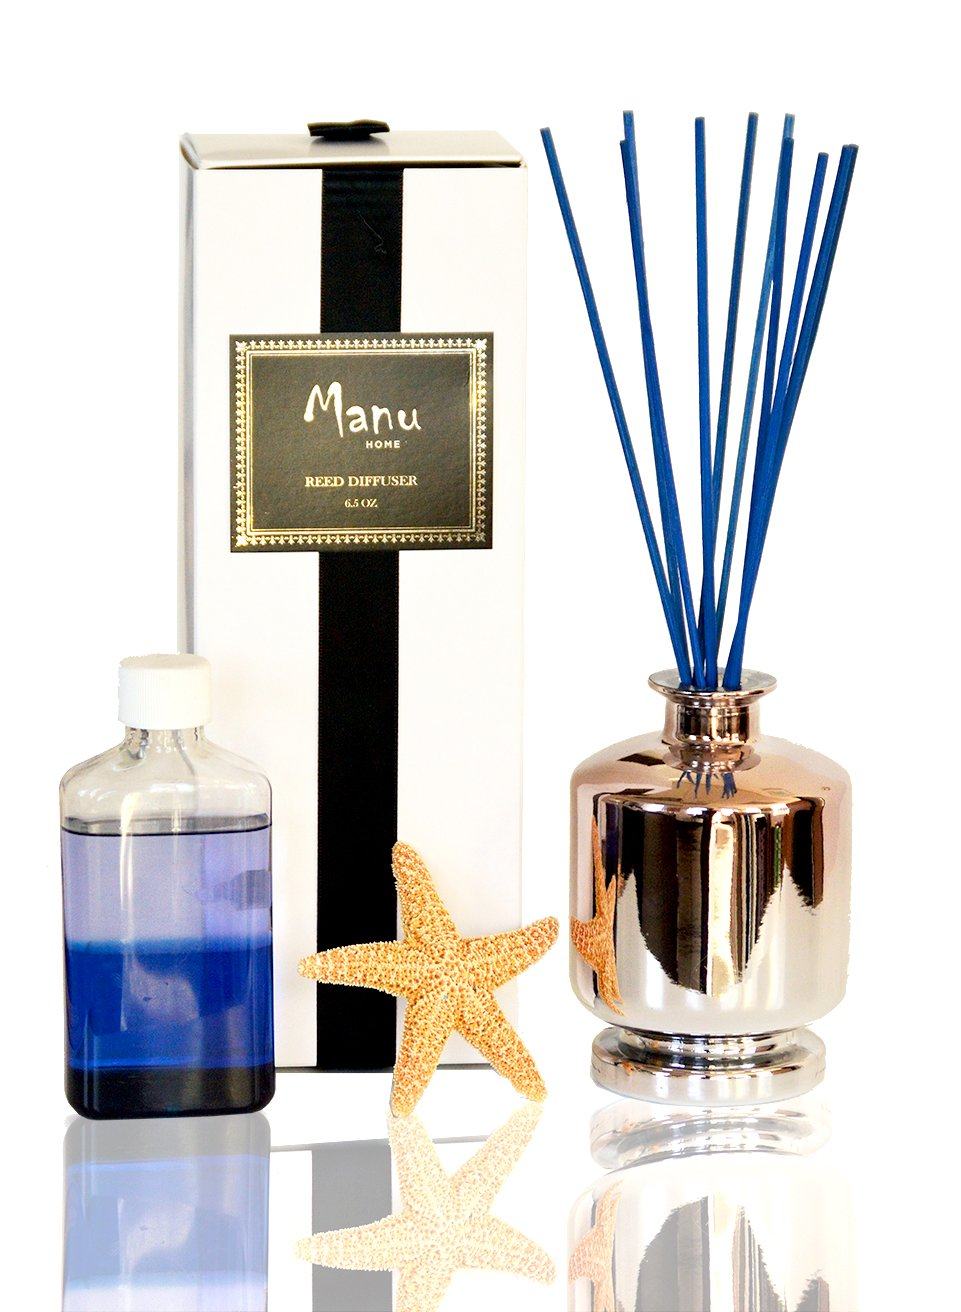 Manu Home Ocean Breeze Waters Reed Diffuser ~ 6.5 oz bottled in Ombre Apothecary-style Reusable glass jar + 4.5 Refill Included! Two sets of Natural Sticks (blue & natural) -Made in the USA!